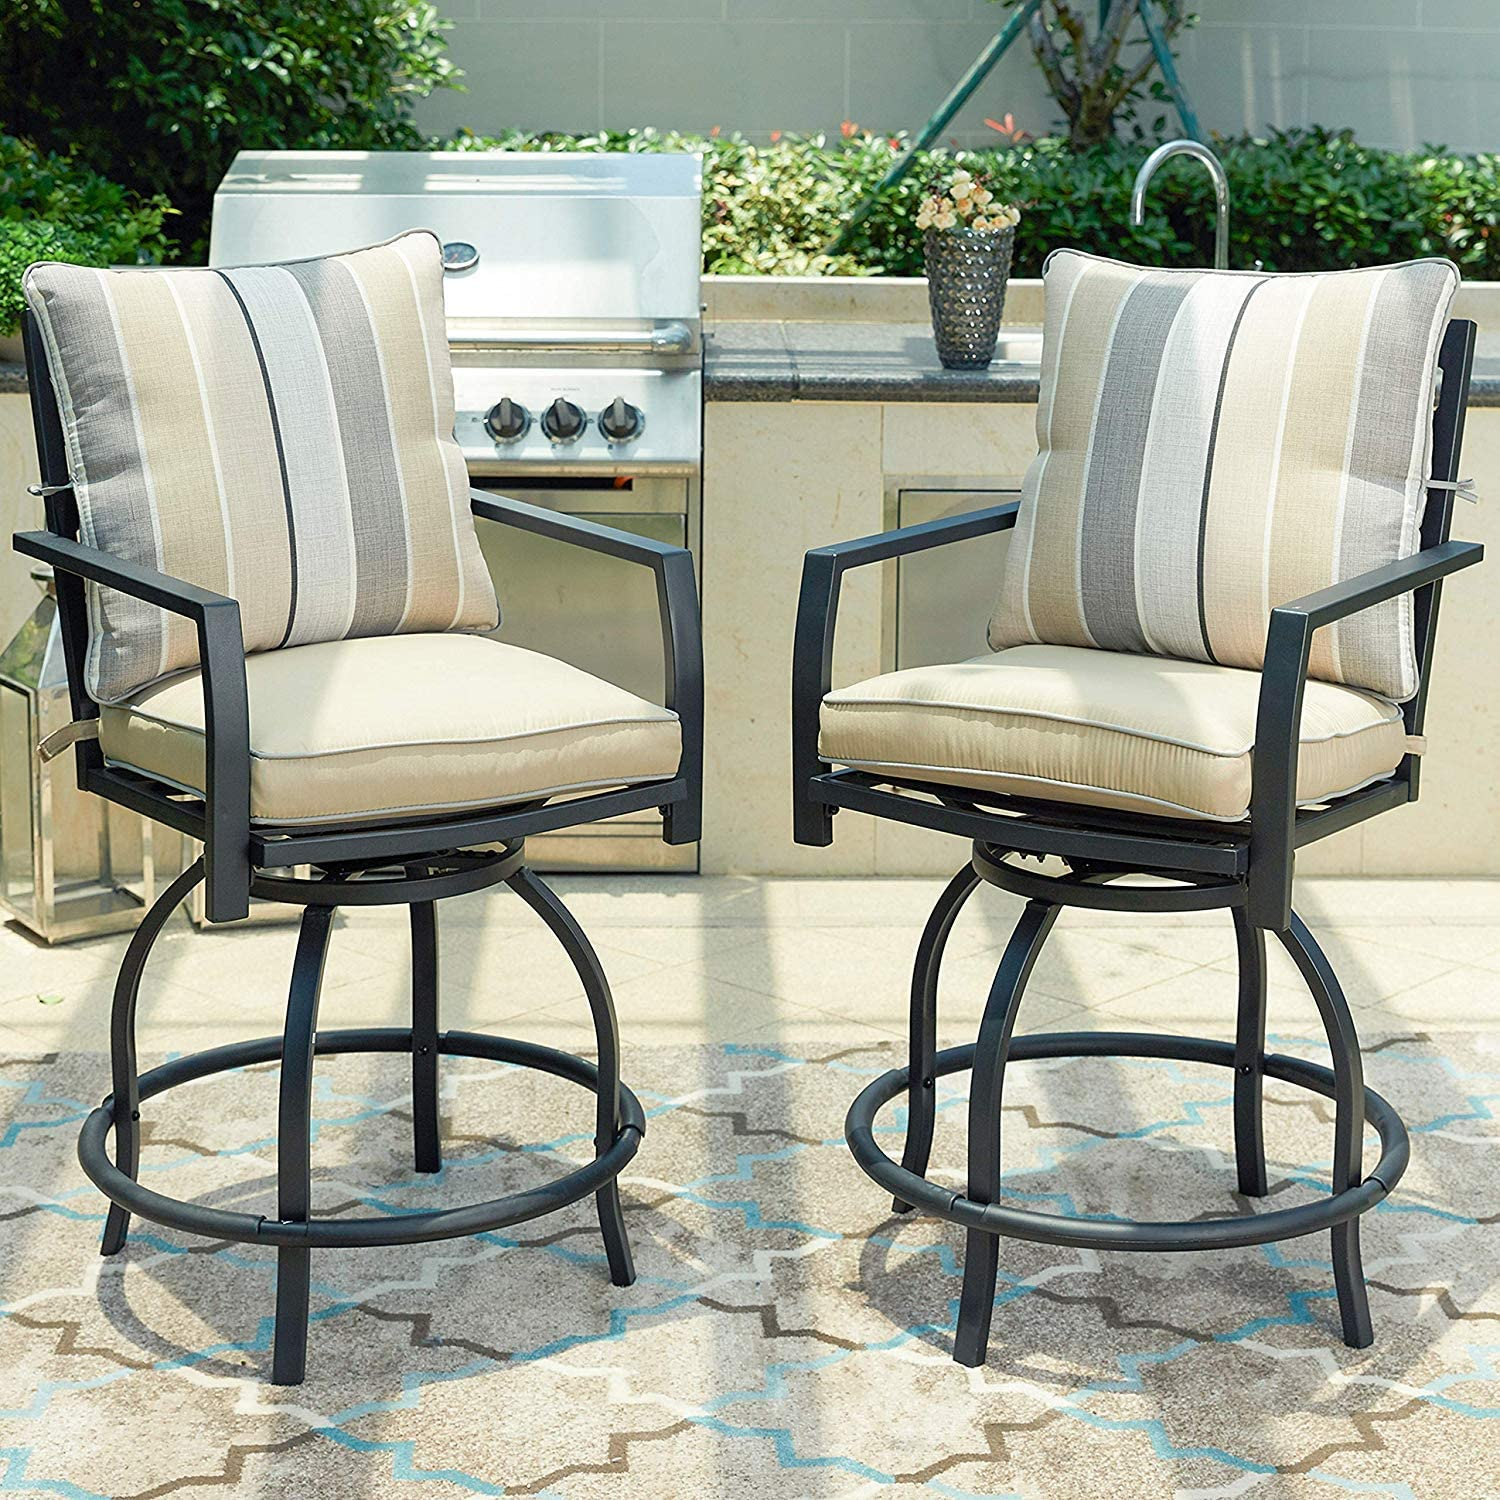 LOKATSE HOME Patio Height Chair Set of 2 Outdoor Swivel Bar Stools with Seat and Back, White Cushions